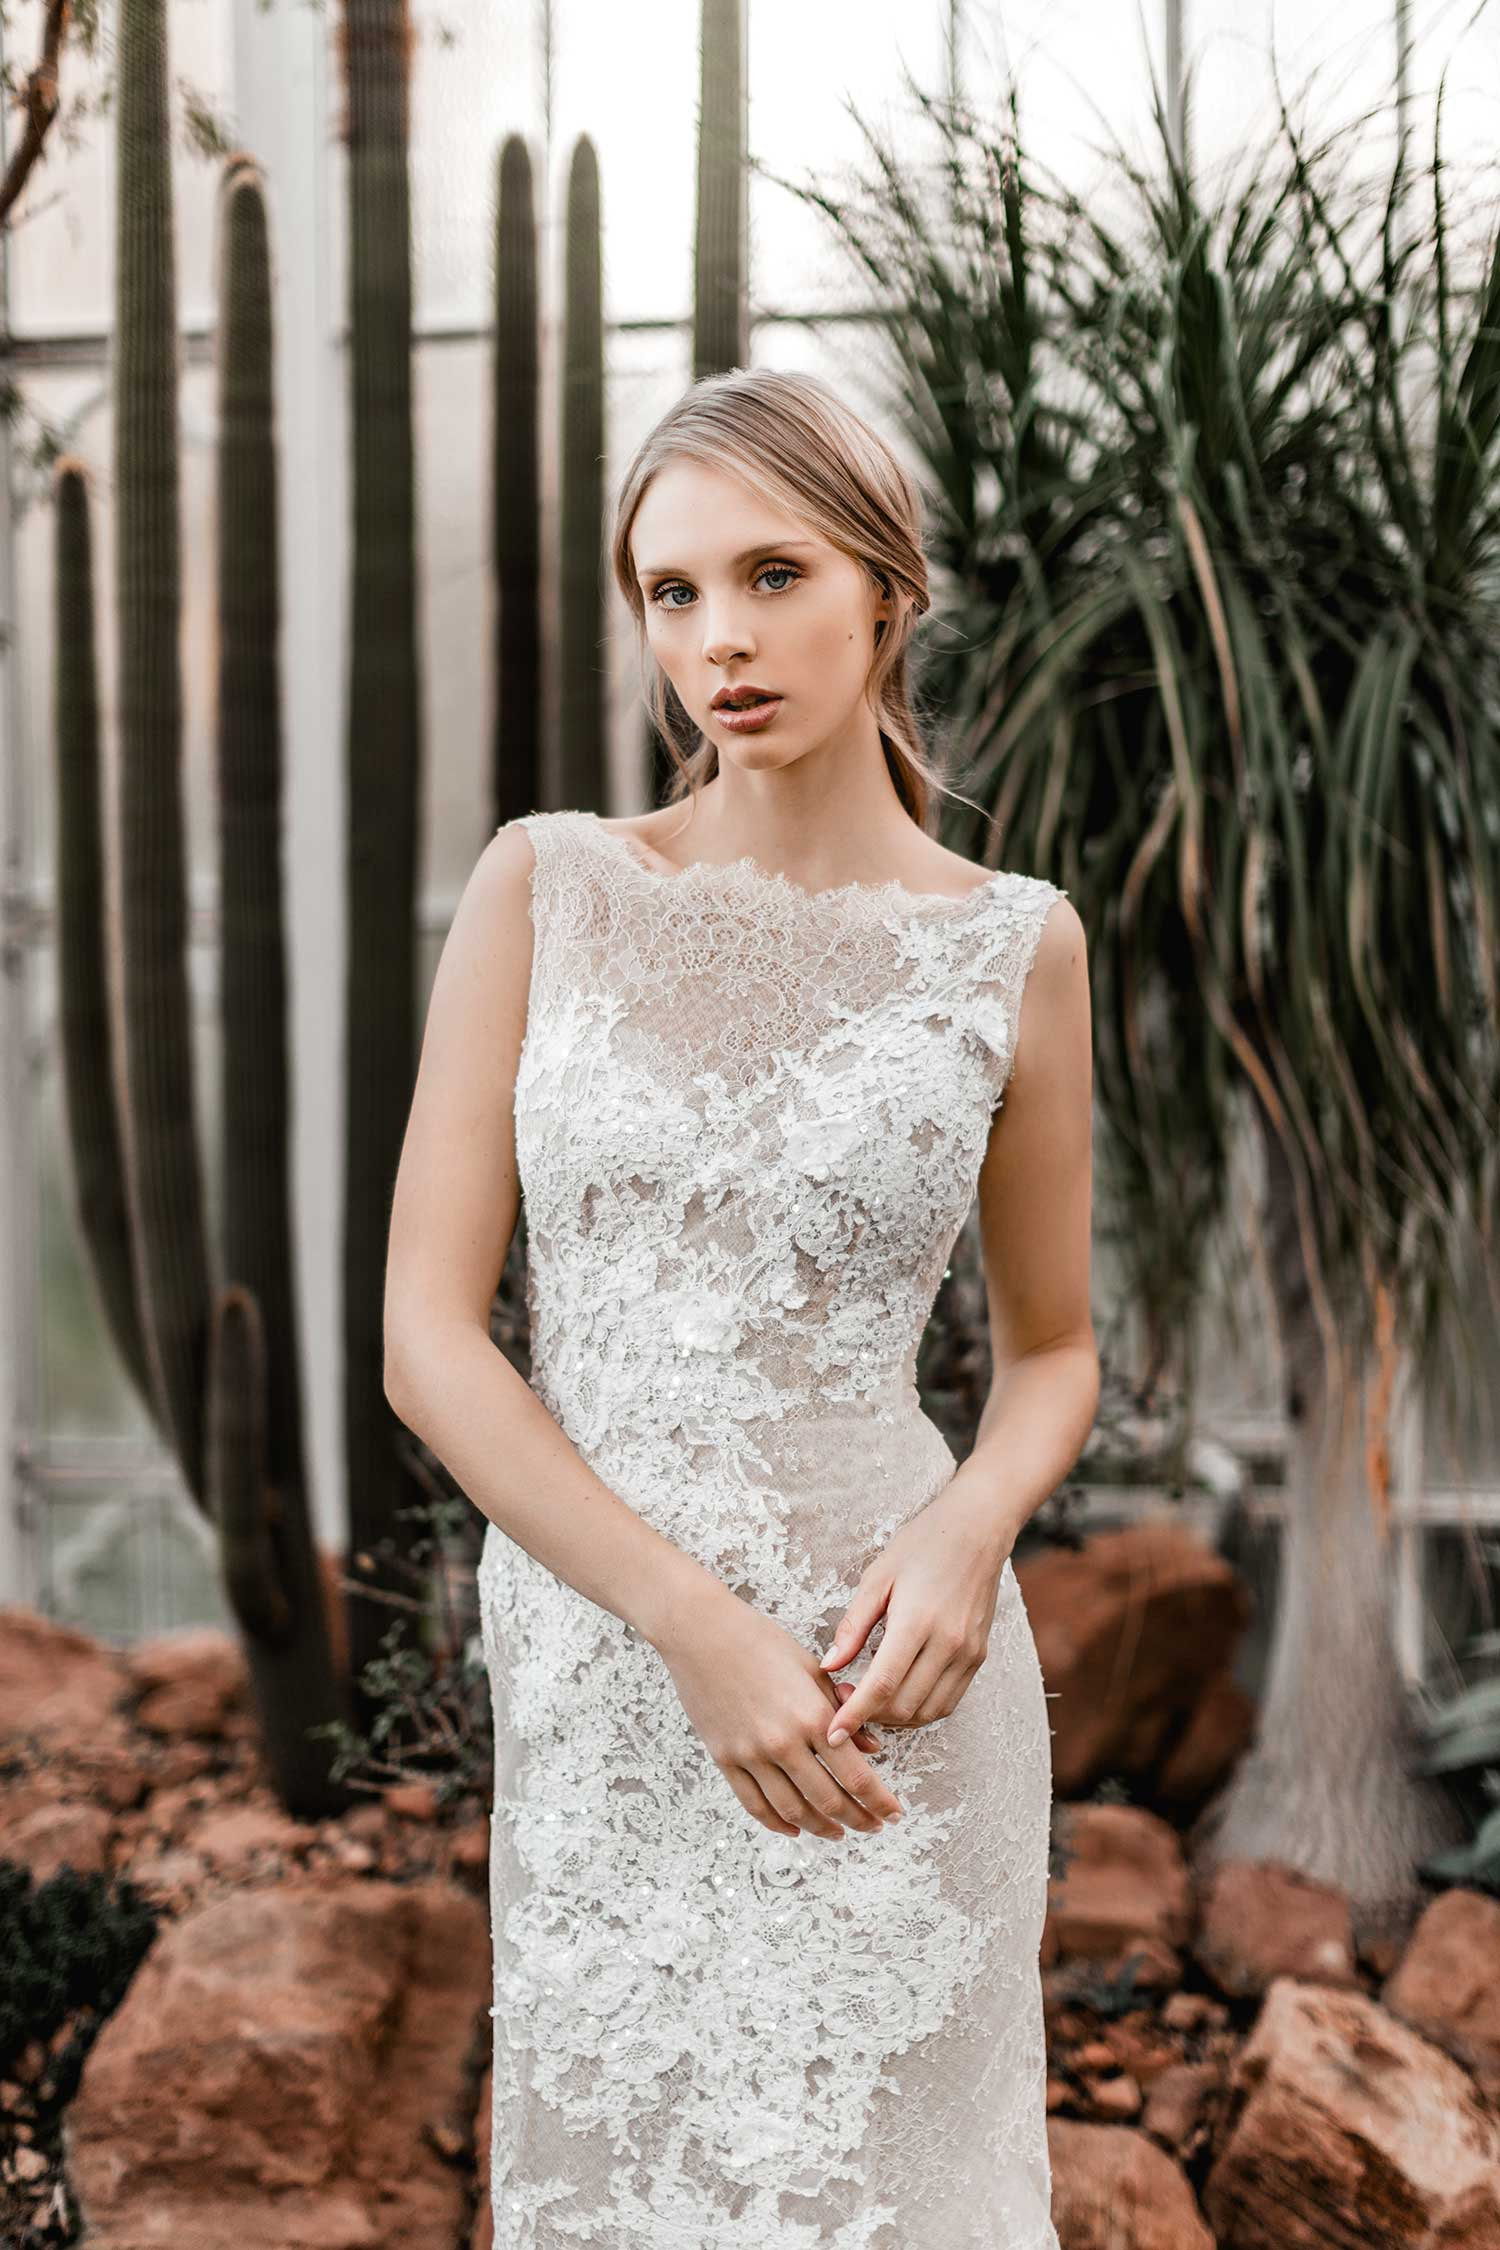 Perfect bridal photos in the Palmgarten